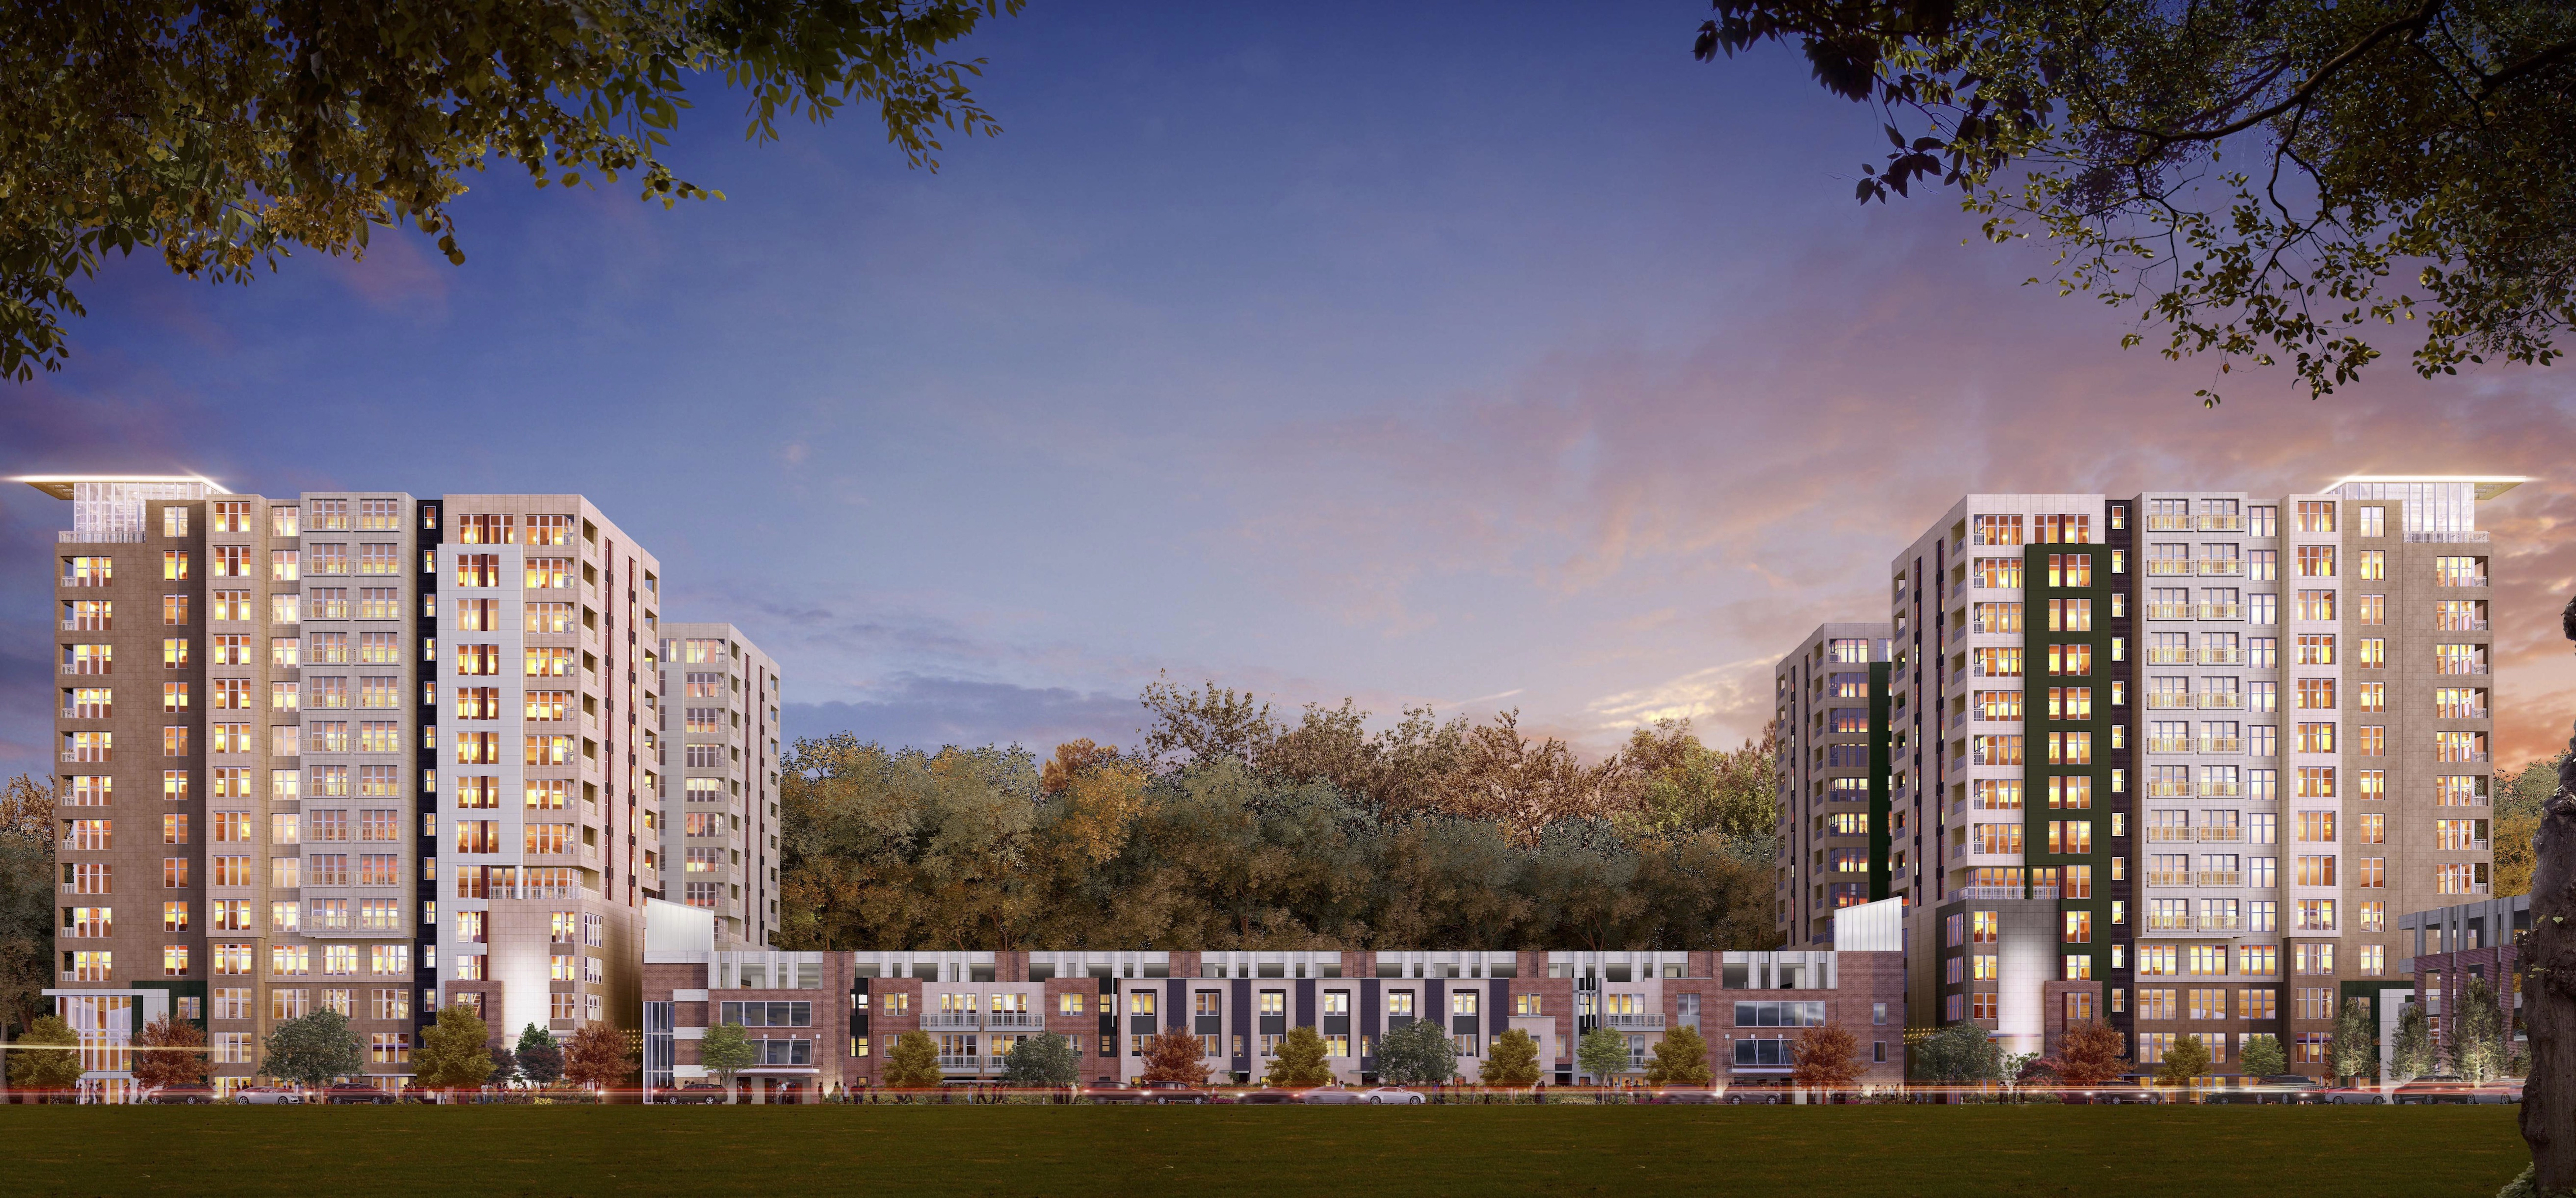 A substantial mix of condos, offices, and retail could replace three Dunwoody office buildings.